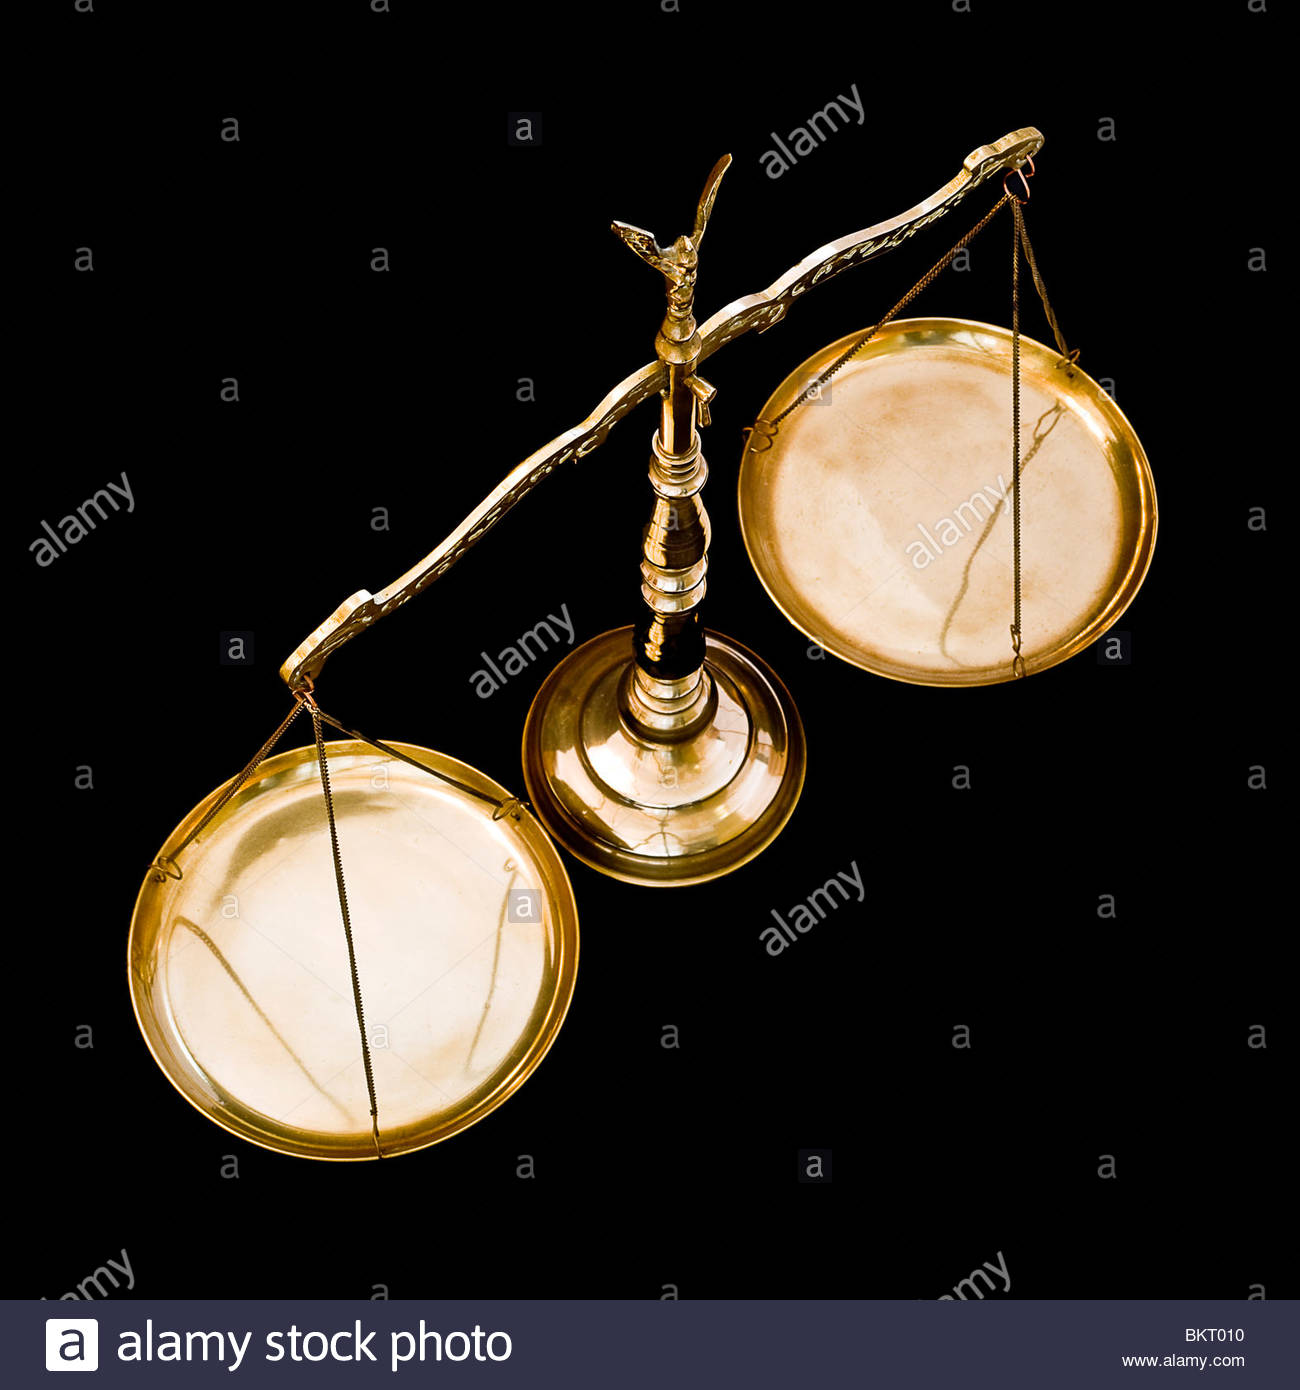 Brass weighing scales on black background - Stock Image